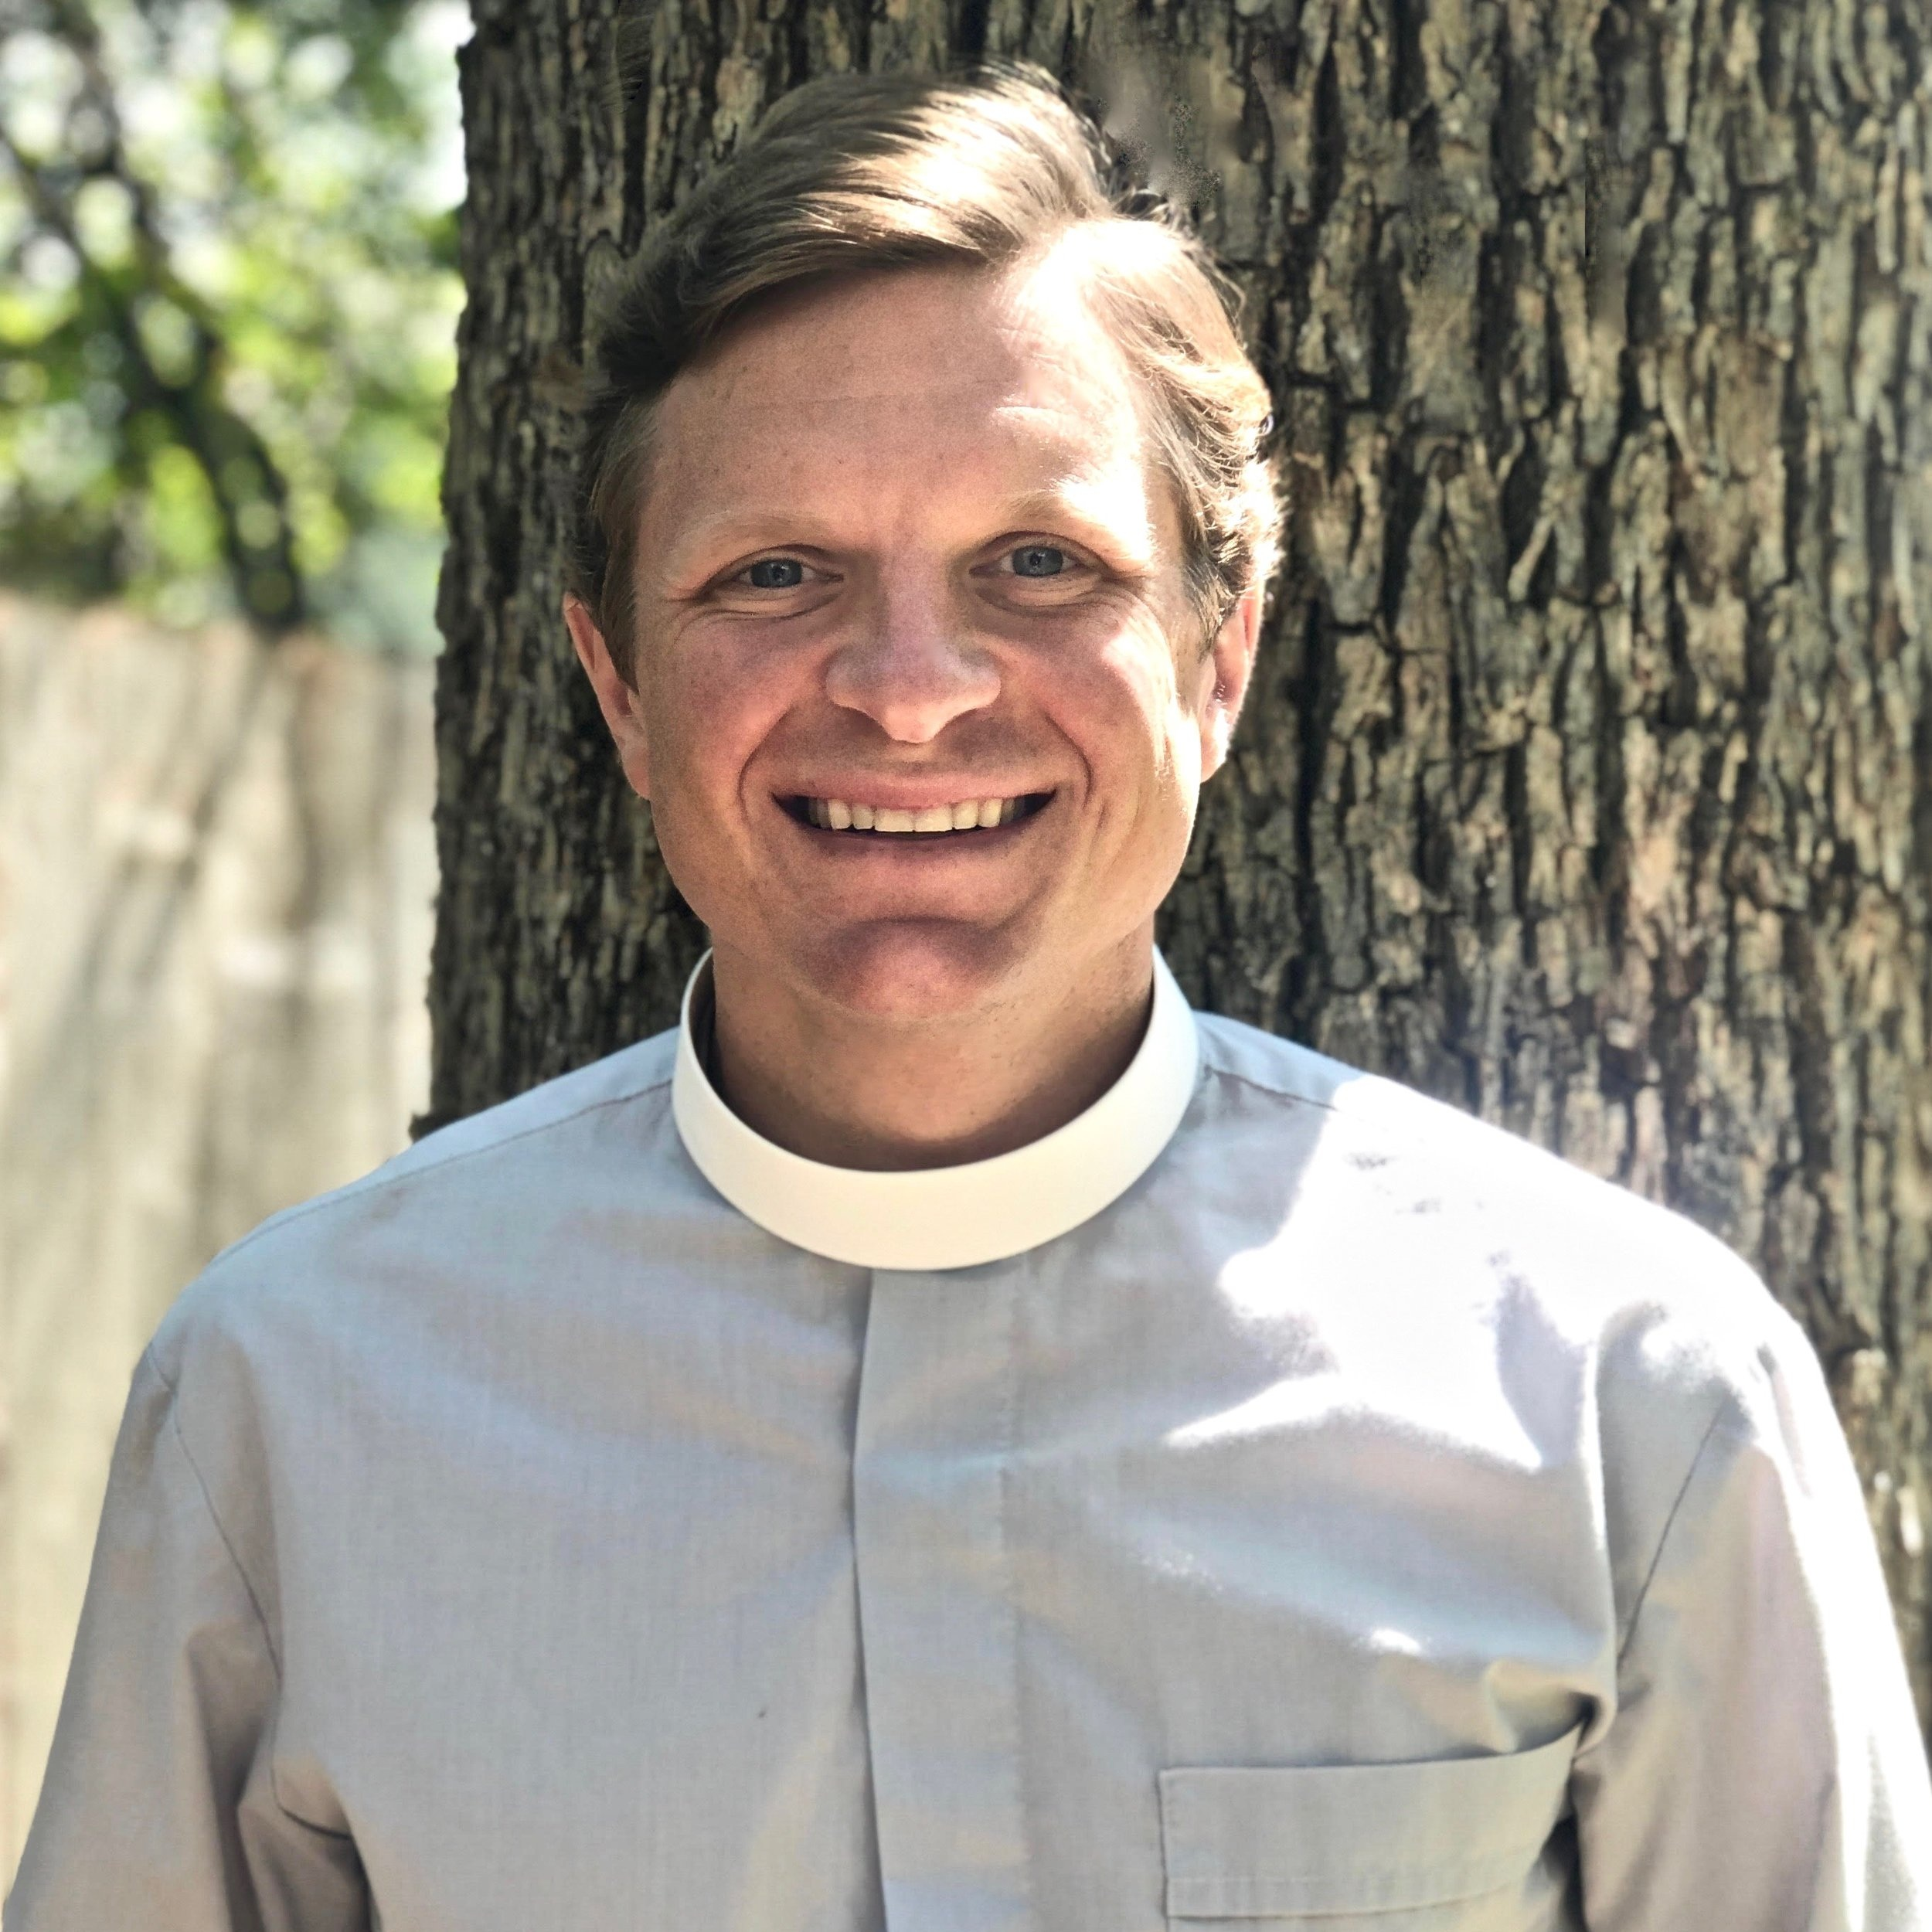 Who We Are | All Saints' Episcopal Church